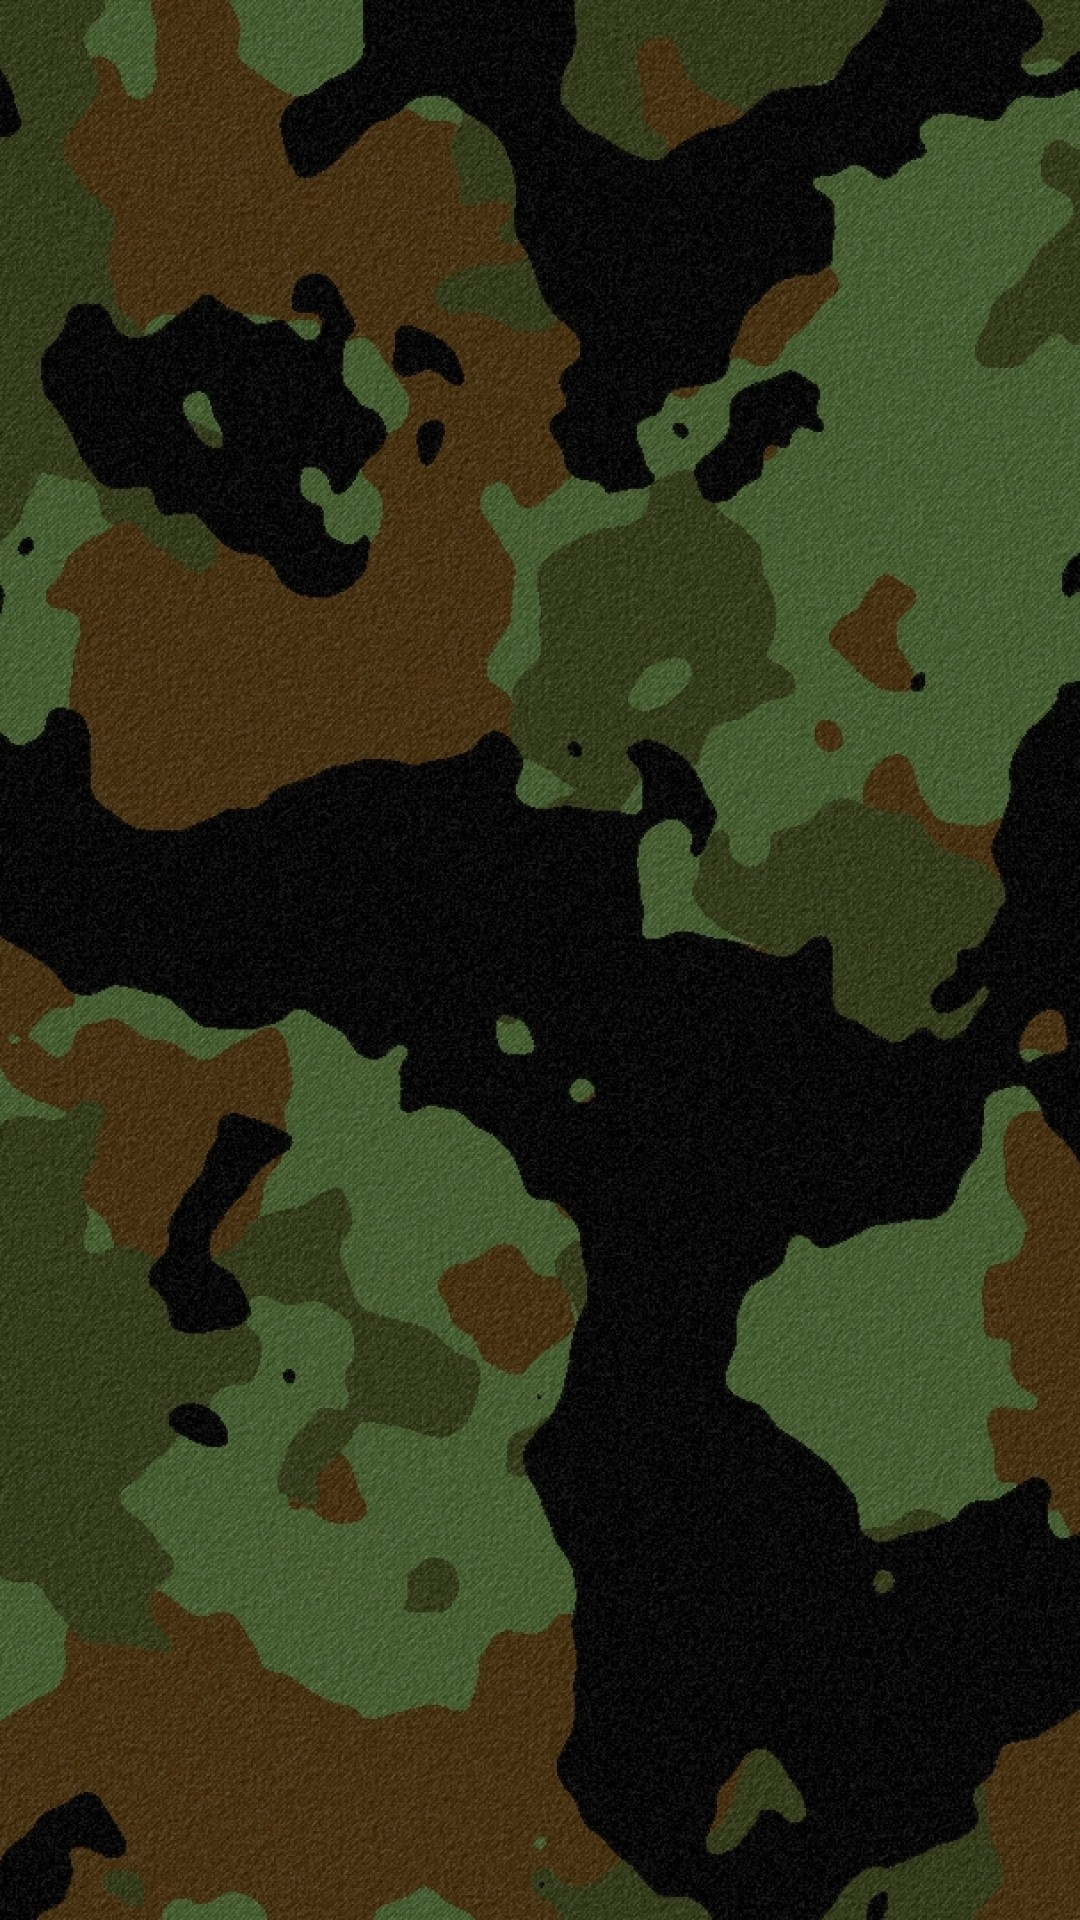 Wallpaper military, background, texture, surface